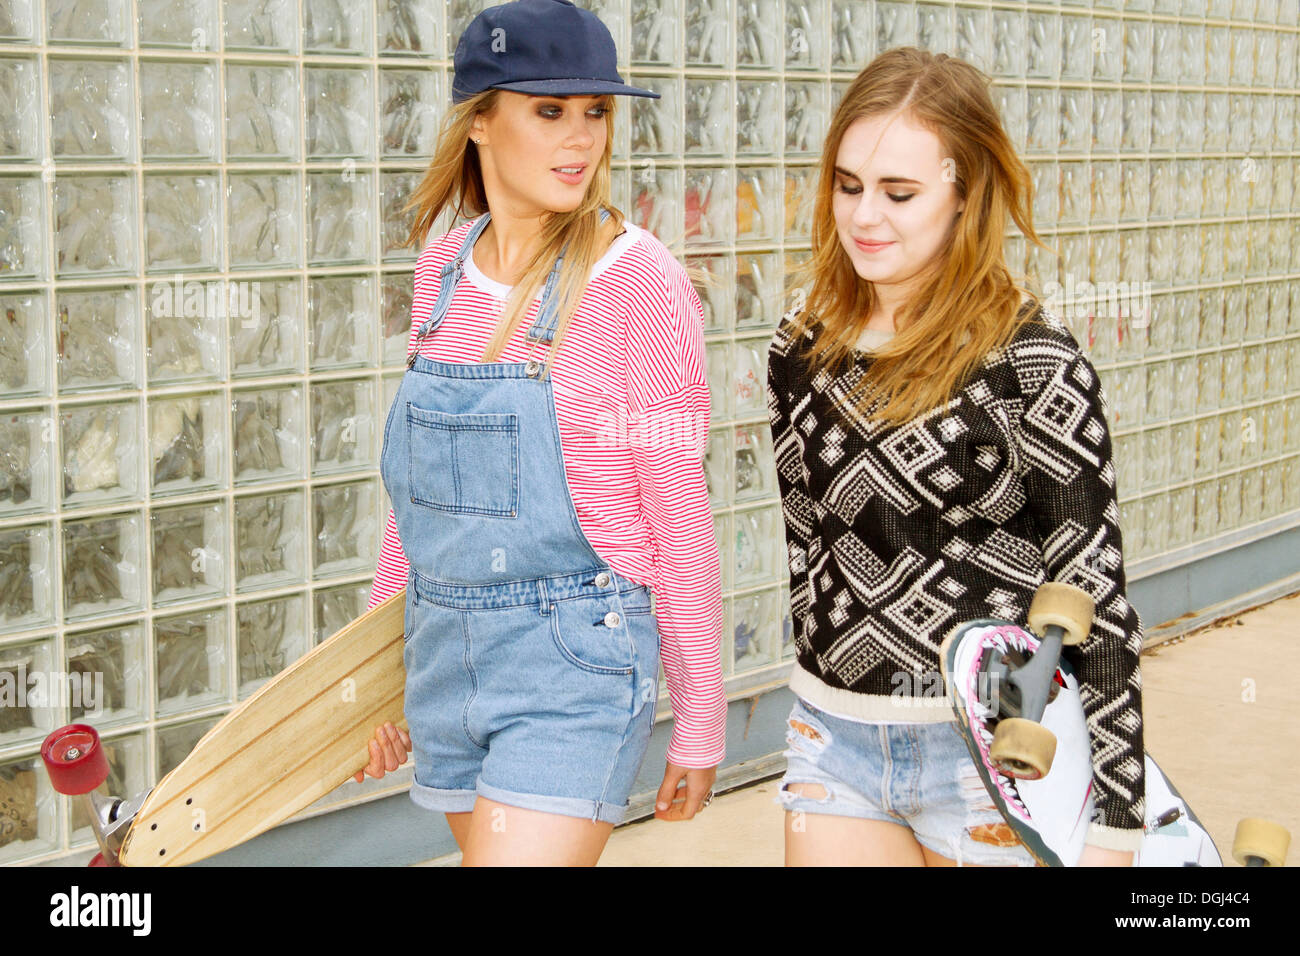 Two young women carrying skateboards beside glass wall - Stock Image